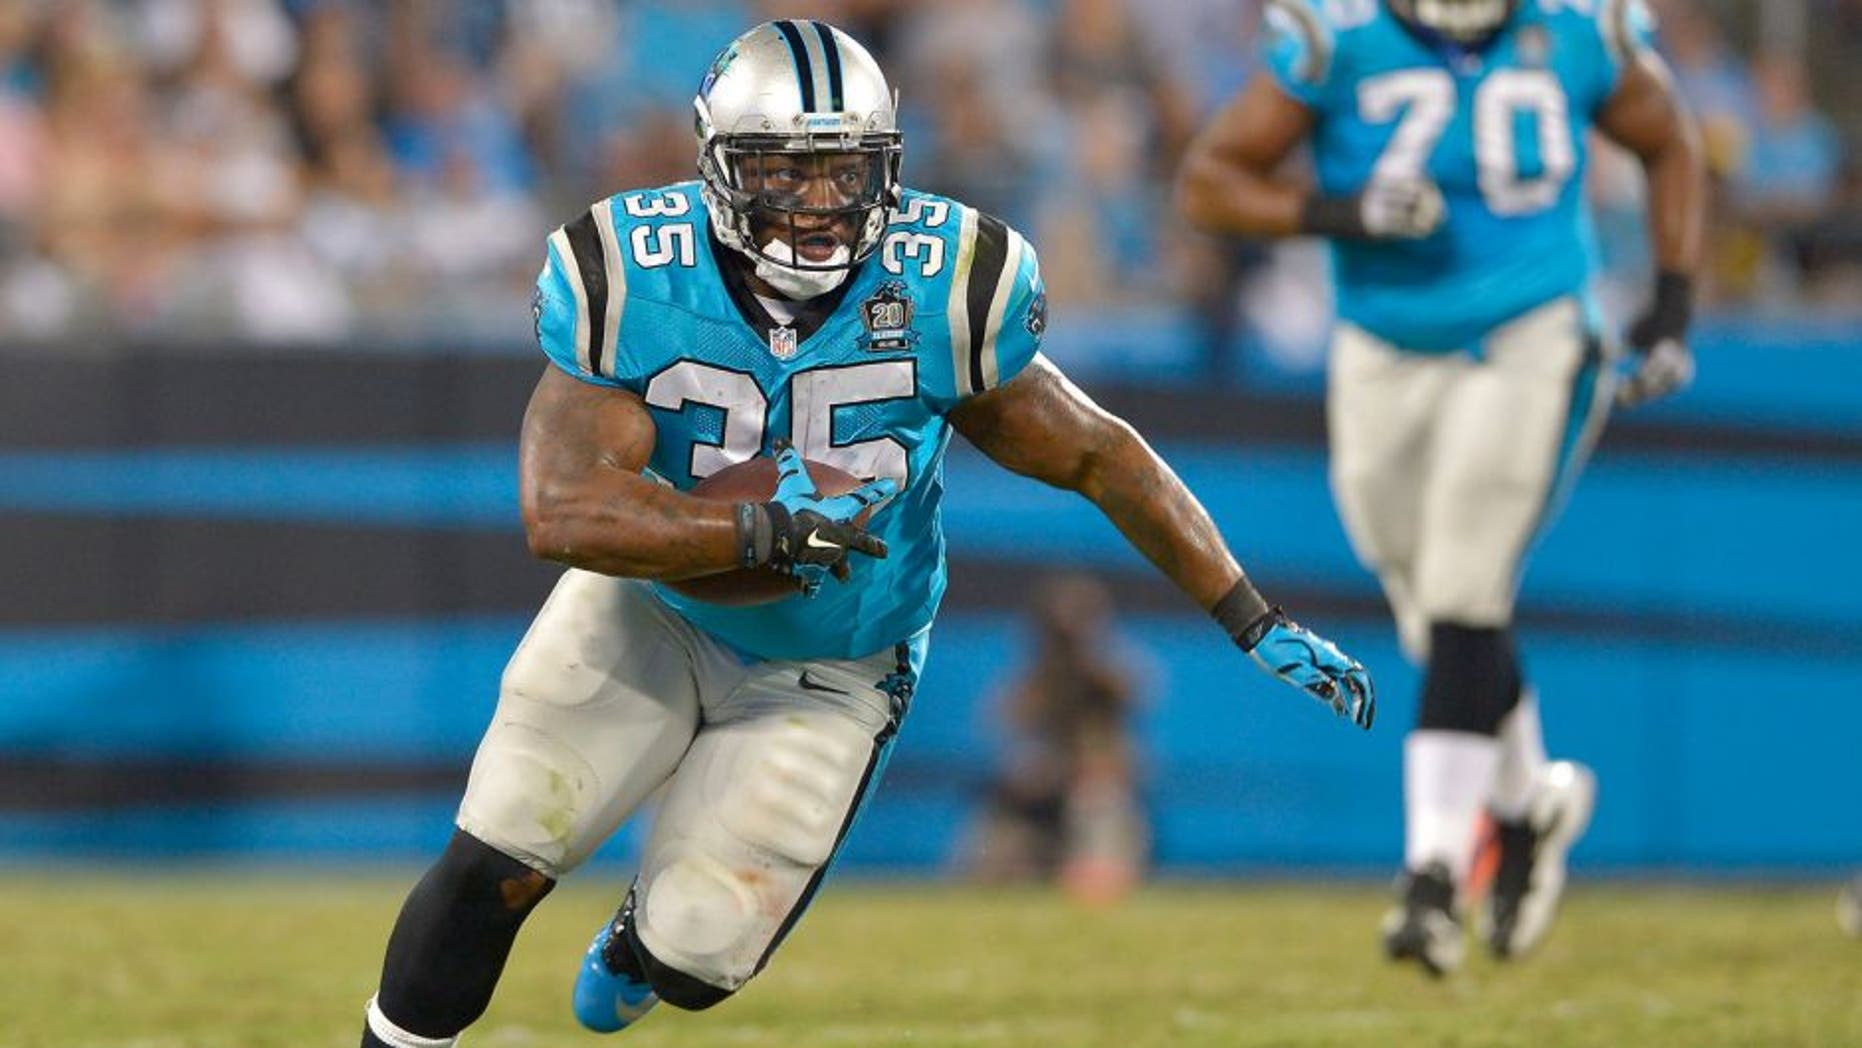 CHARLOTTE, NC - SEPTEMBER 21: Mike Tolbert #35 of the Carolina Panthers runs against the Pittsburgh Steelers during their game at Bank of America Stadium on September 21, 2014 in Charlotte, North Carolina. The Steelers won 37-19. (Photo by Grant Halverson/Getty Images) *** Local Caption *** Mike Tolbert